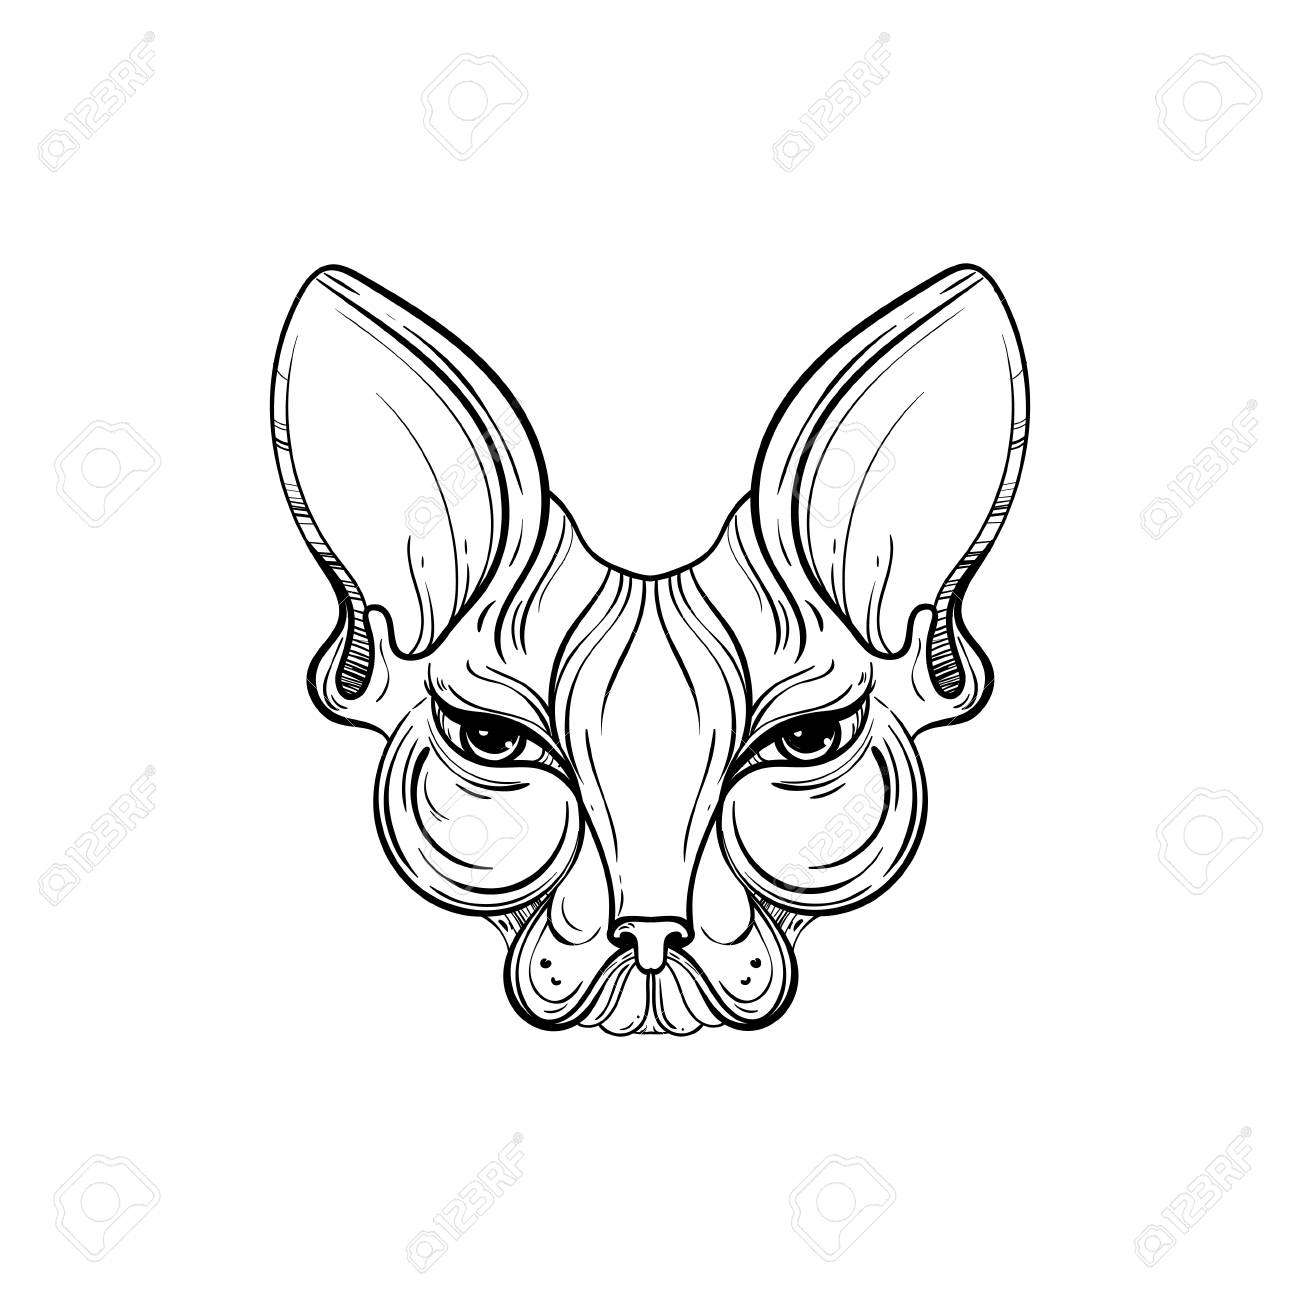 sphynx cat face vector illustration tattoo template in monochrome